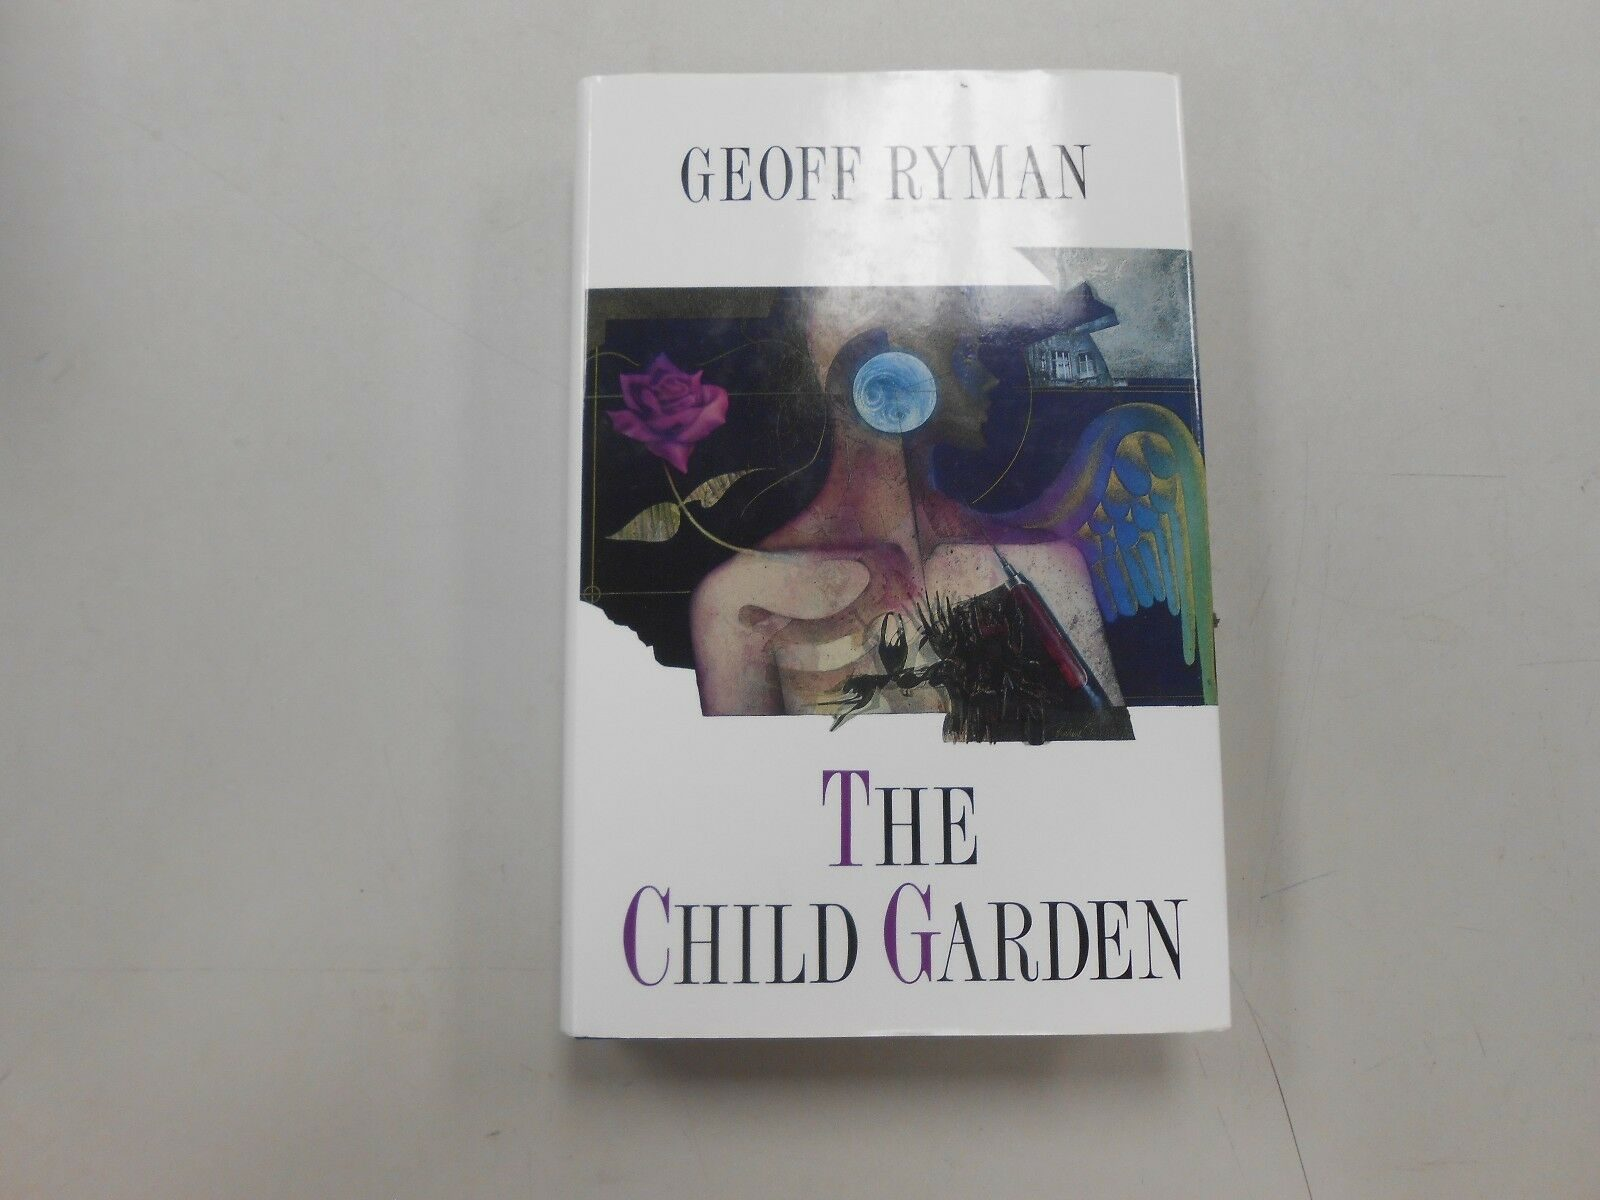 The Child Garden, A Great Novel by Geoff Ryman